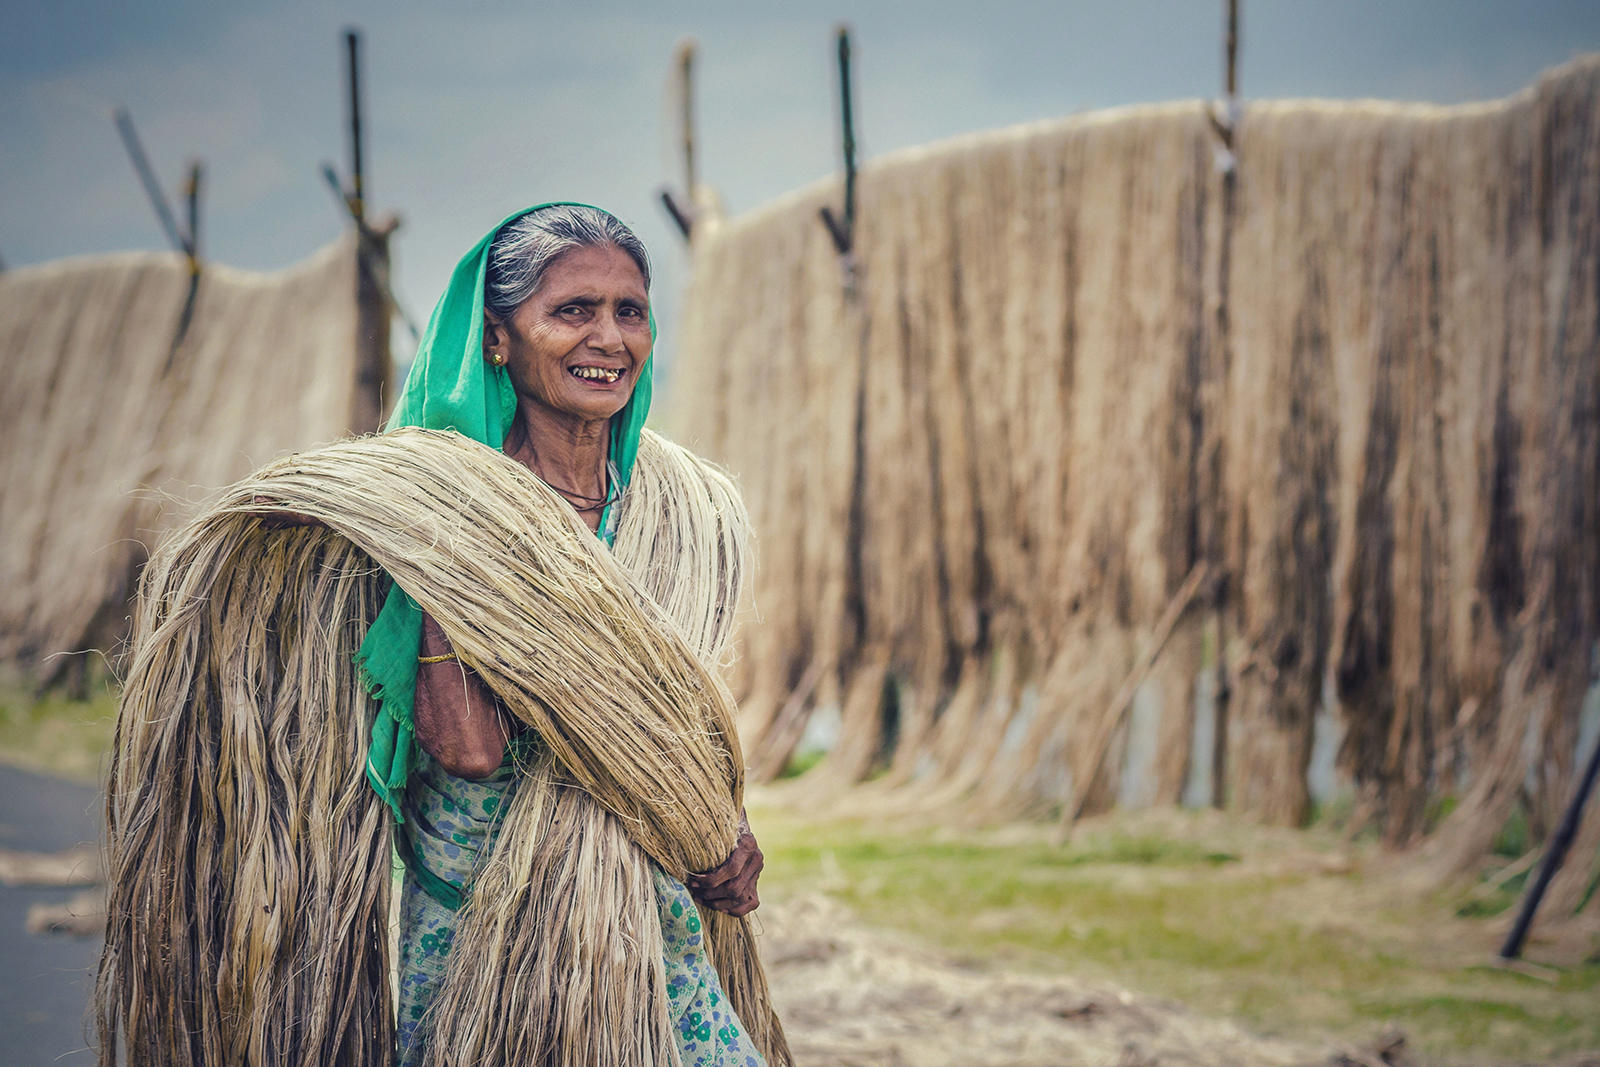 The old Grandma who is trying to make dry the bundles of jute.After completely drying she sell those to earn some money to survive , She really doing a very hard work and it's very important role in our jute industry.